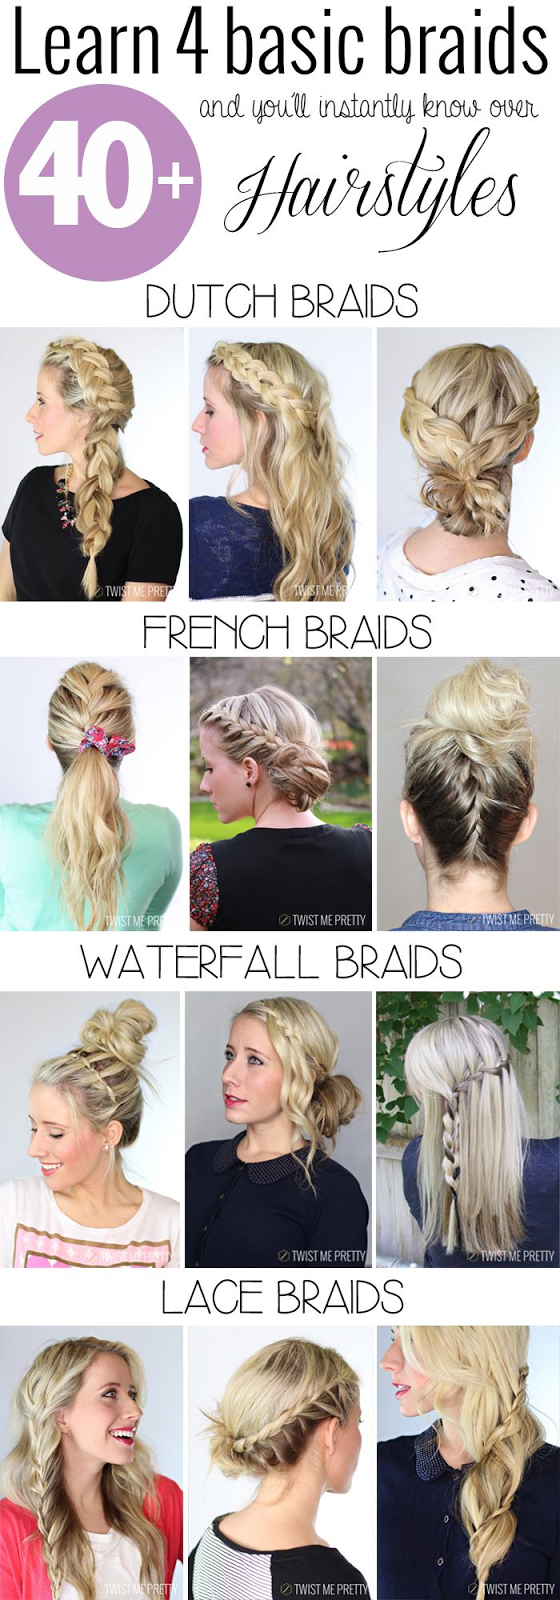 Learn Your 4 Basic Braids